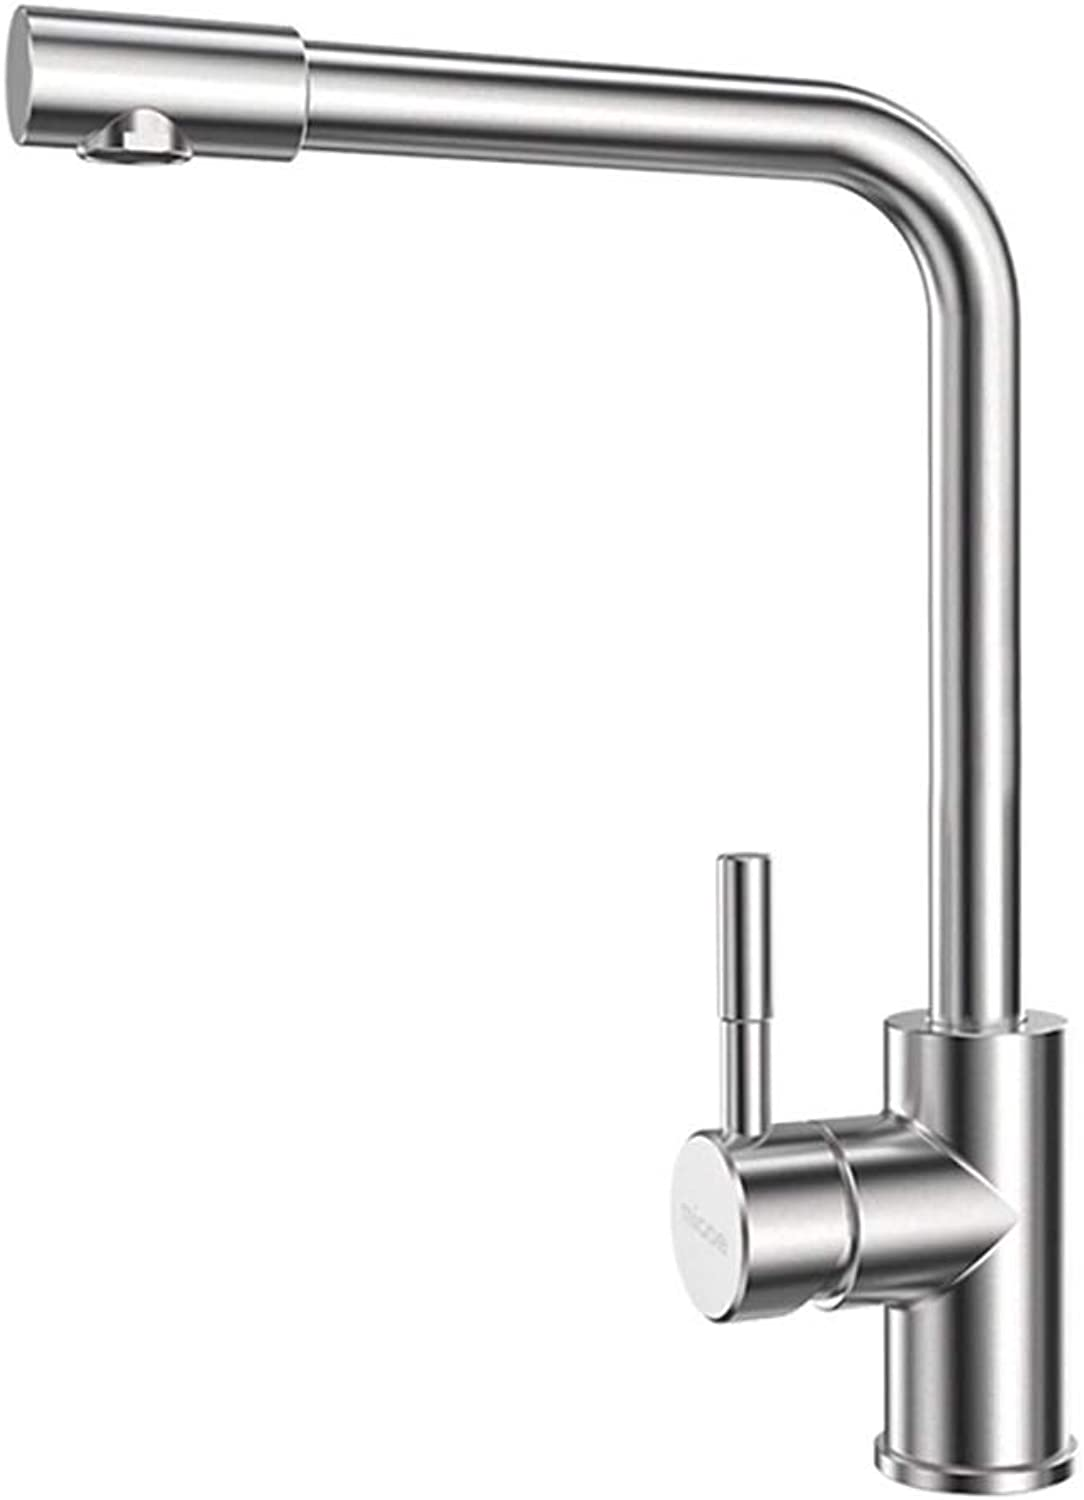 WYRSXPY Basin Tap Faucet Brushed Stainless Steel Kitchen Hot And Cold Water Tap 360° redating Sink Faucet (color   Silver)